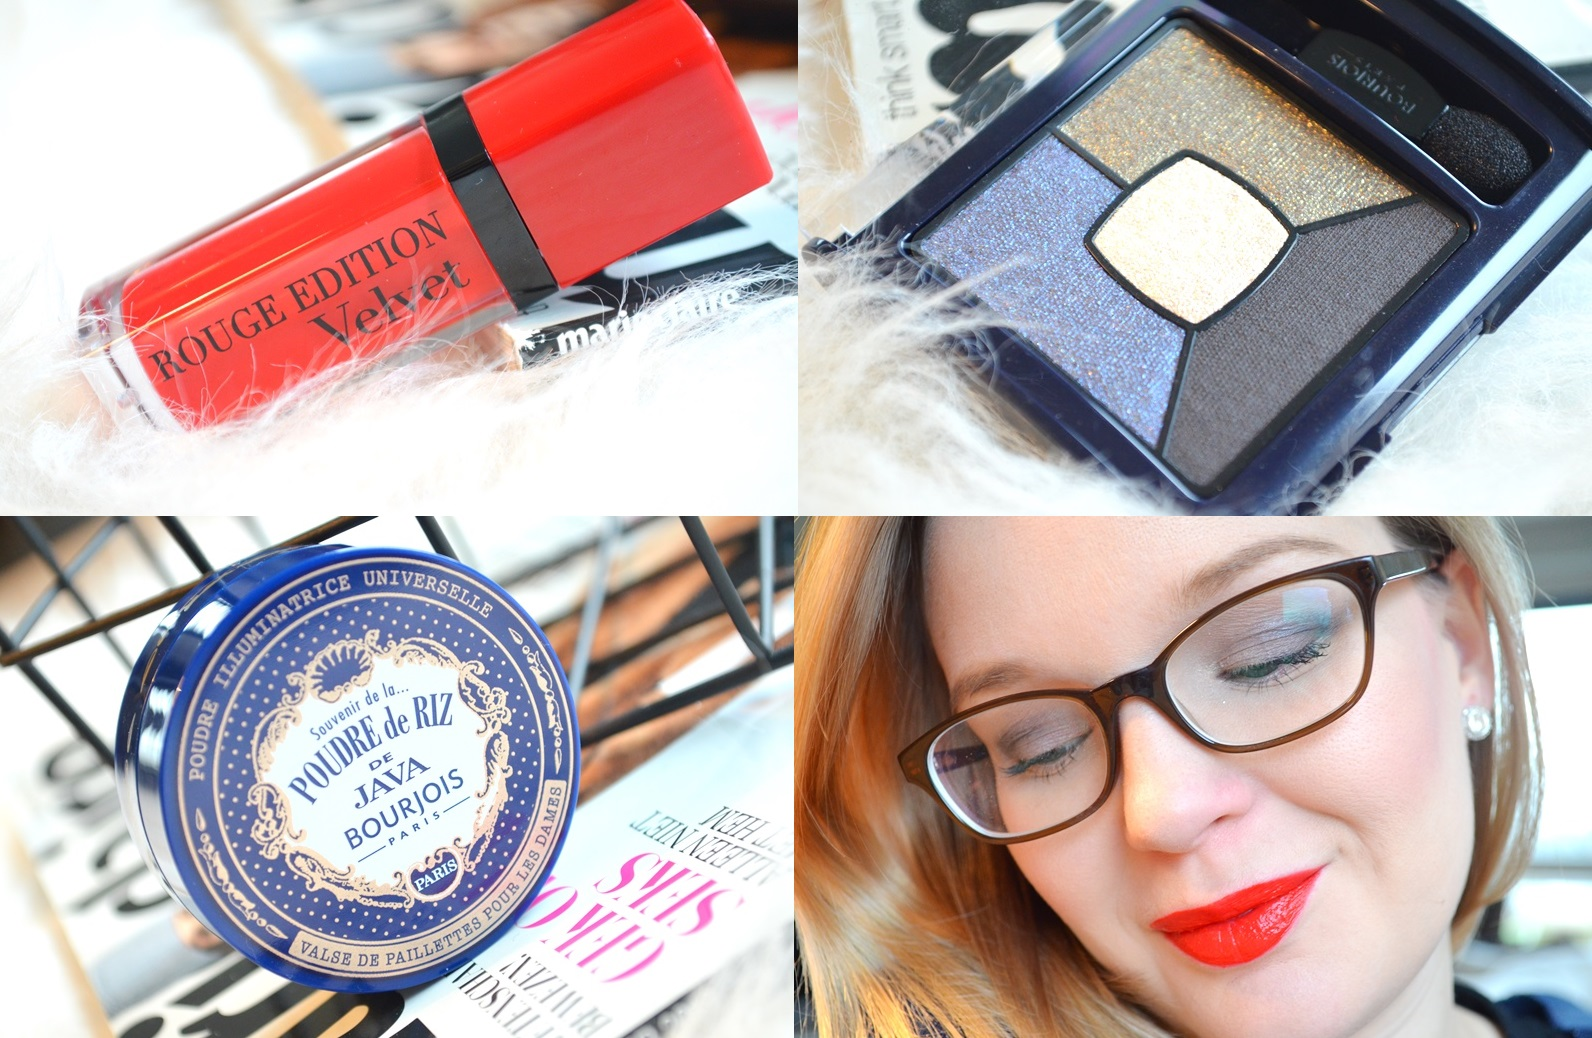 Bourjois Night Lights in Paris Kerst 2015 - Elisejoanne.nl